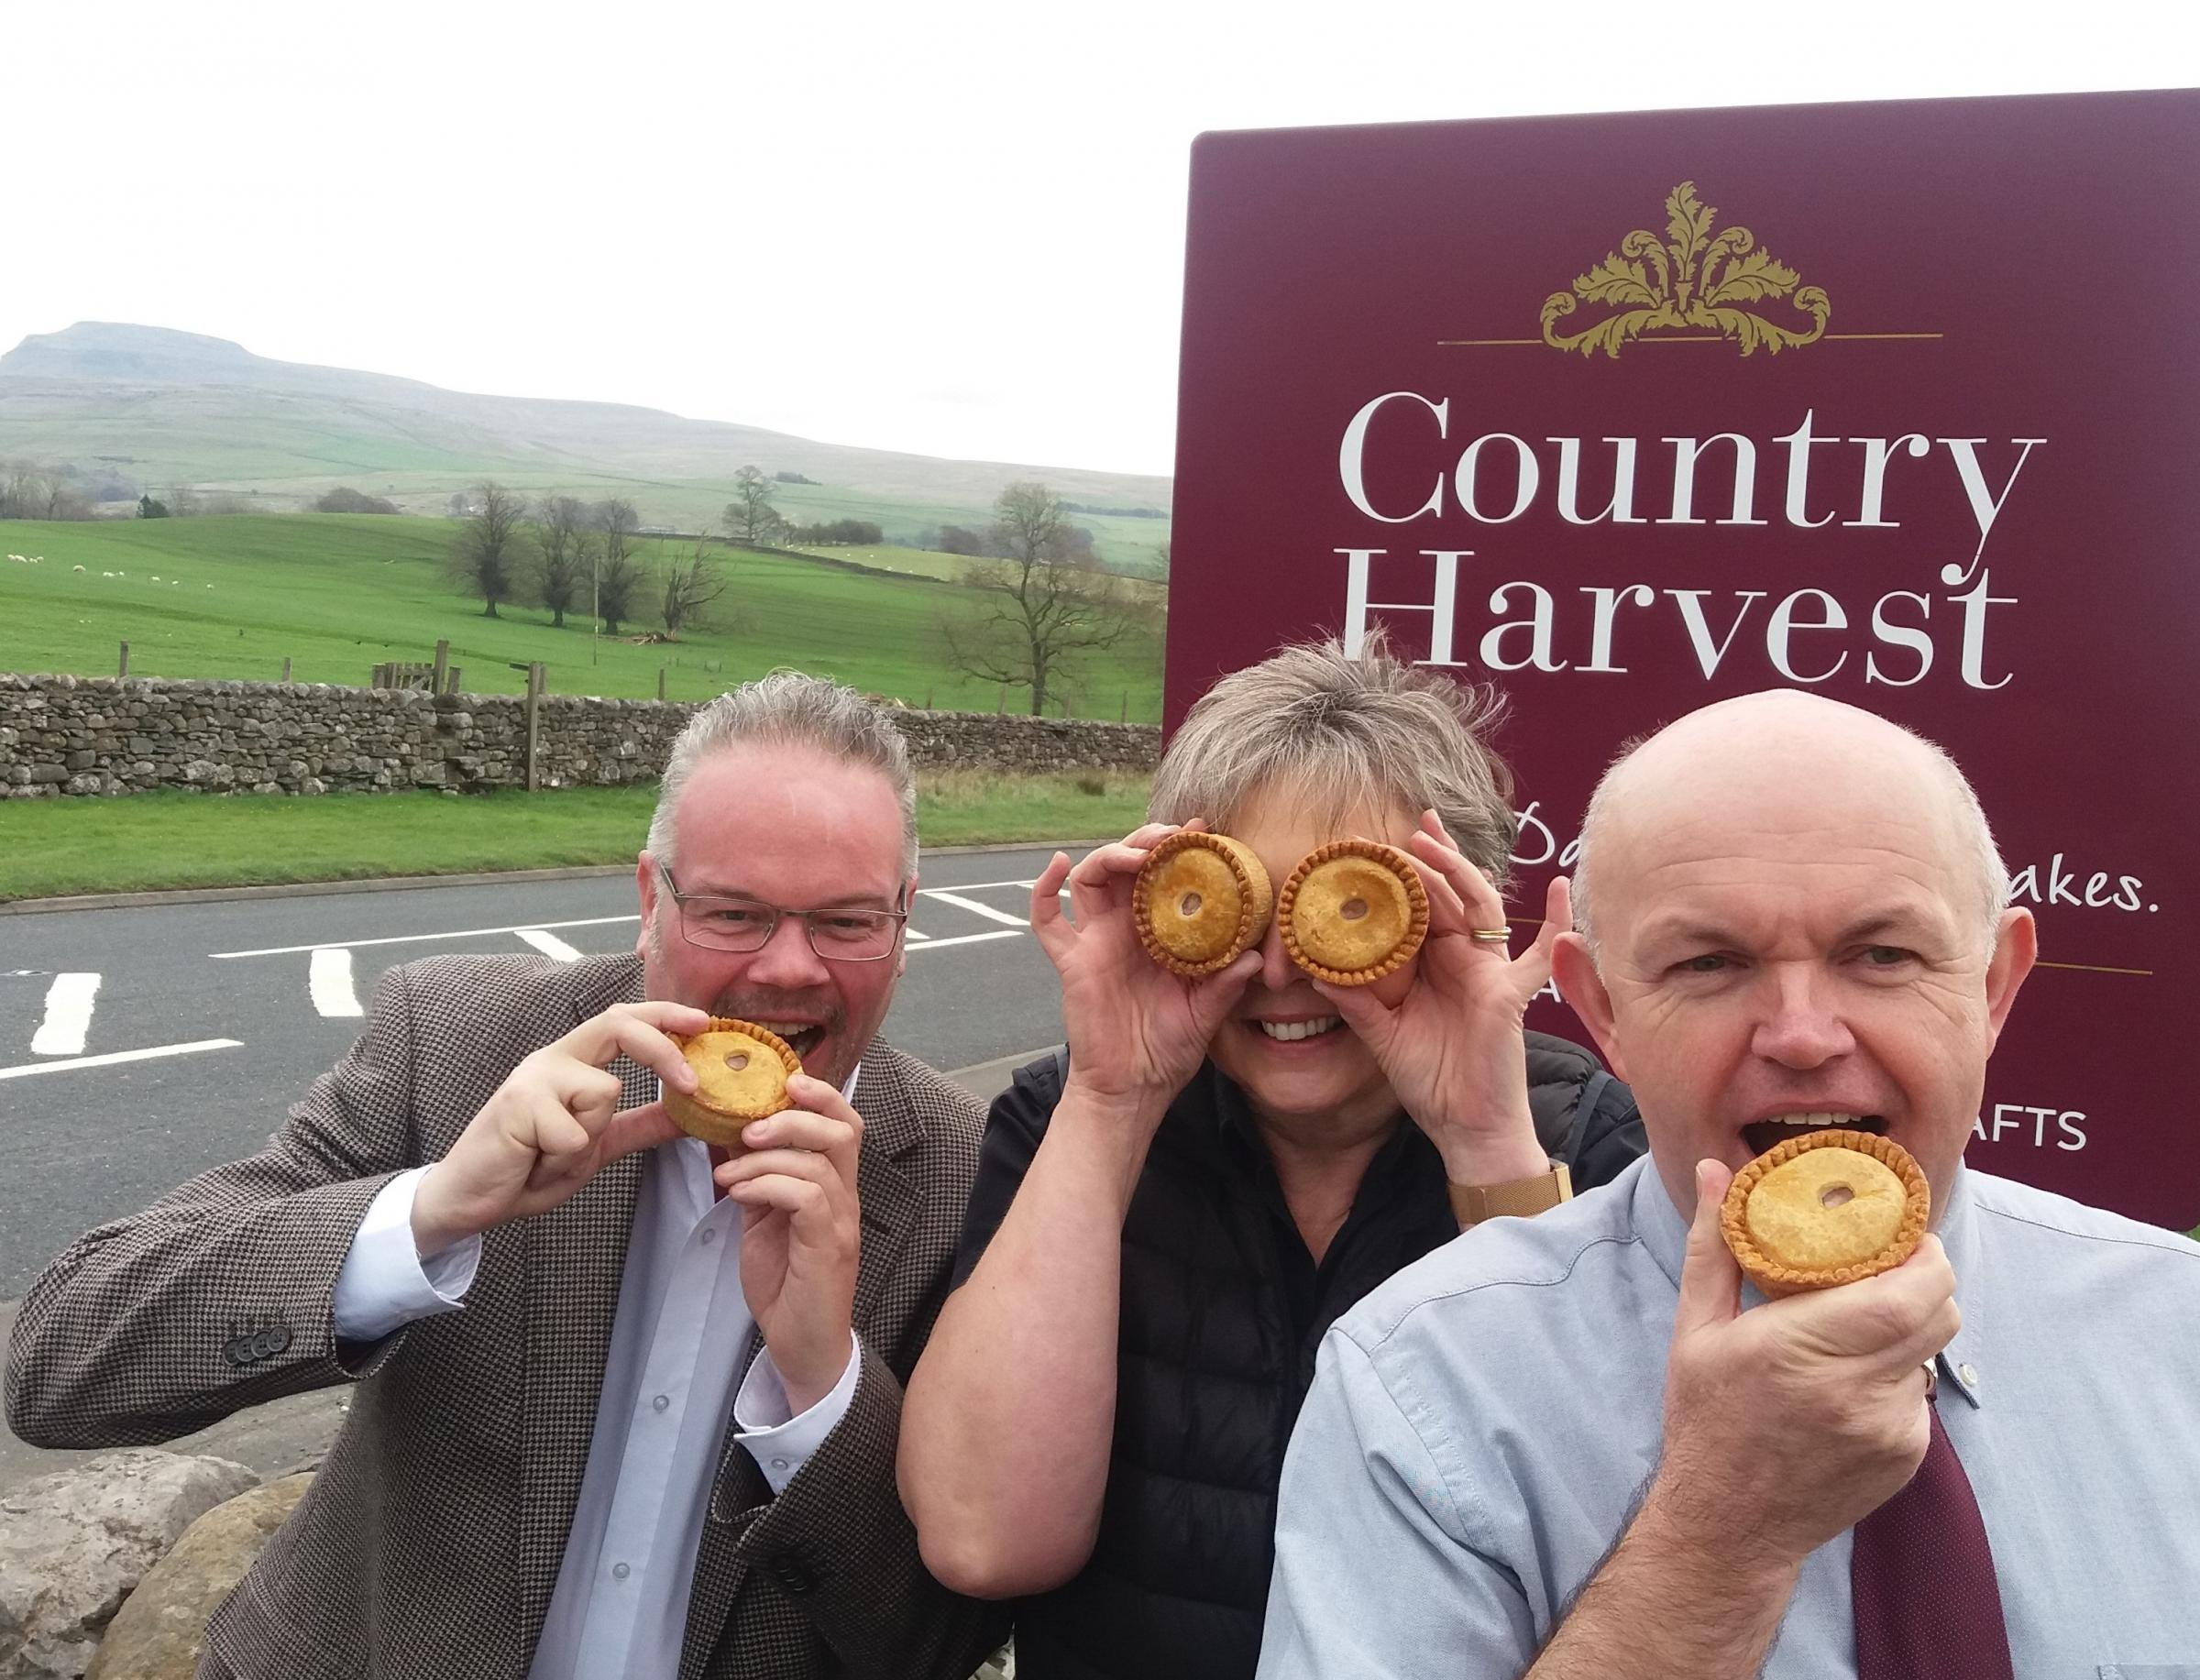 All eyes on the pies at Ingleton's Country Harvest